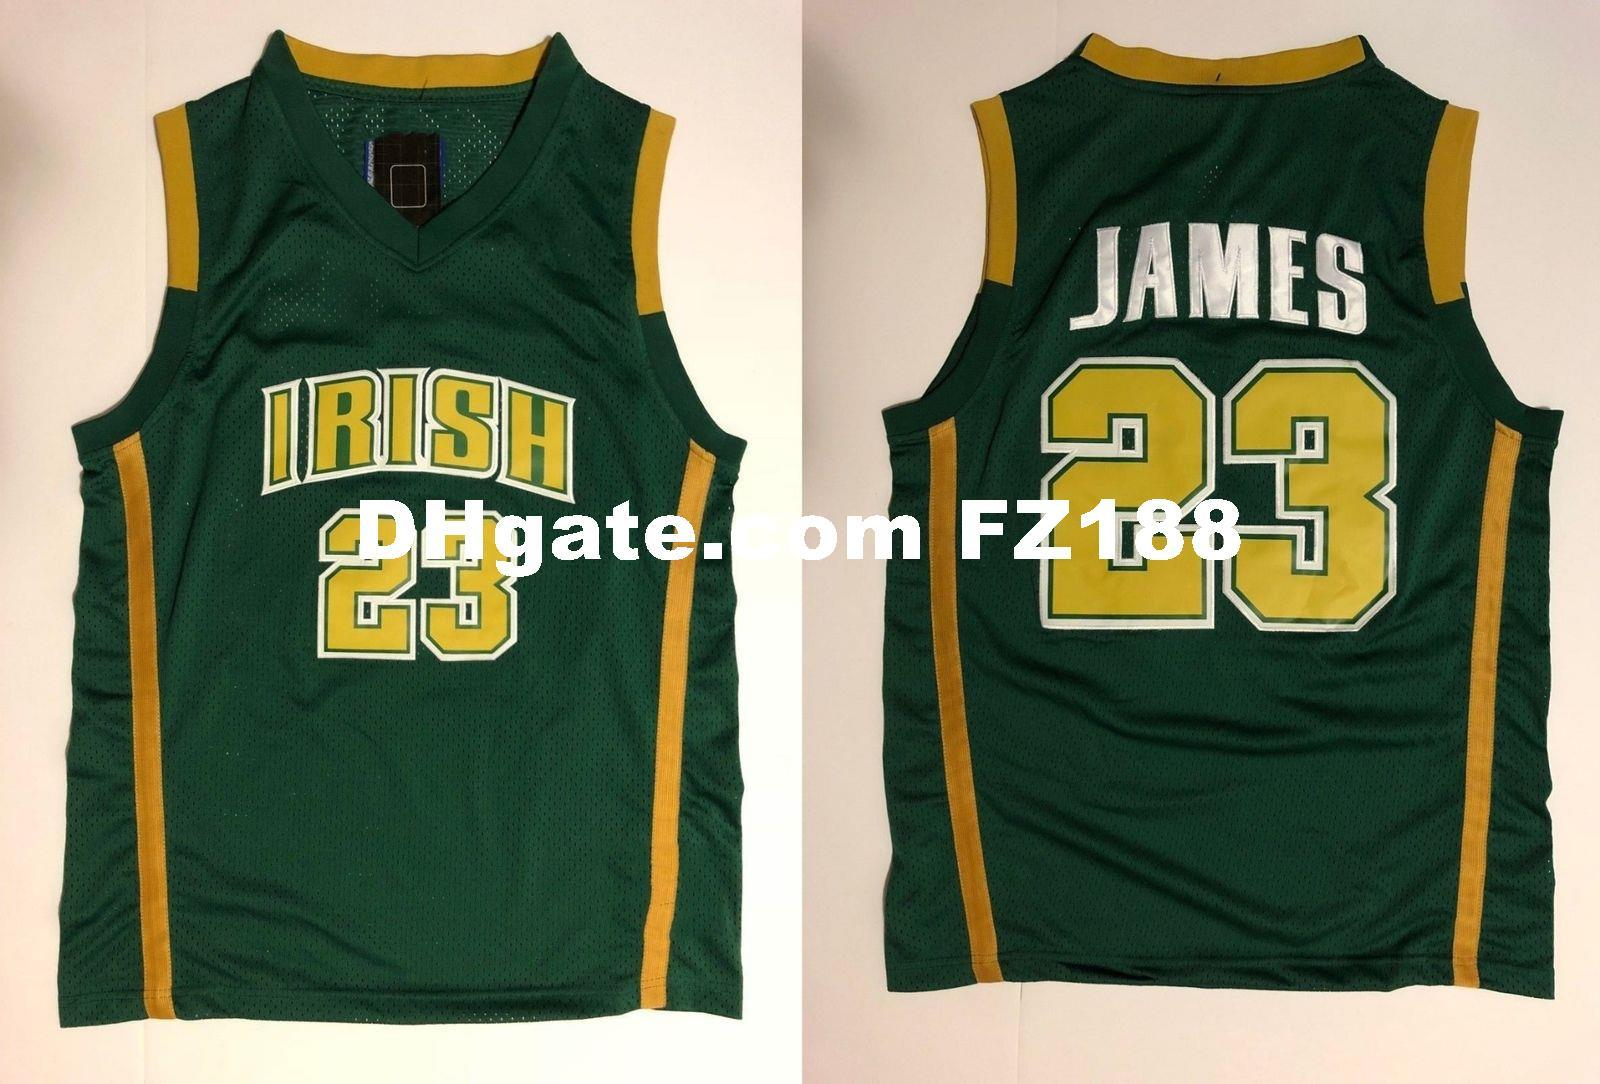 new products 12fa6 4f297 Lebron James #23 SVSM Irish High School Basketball Jersey XS-6XL Green